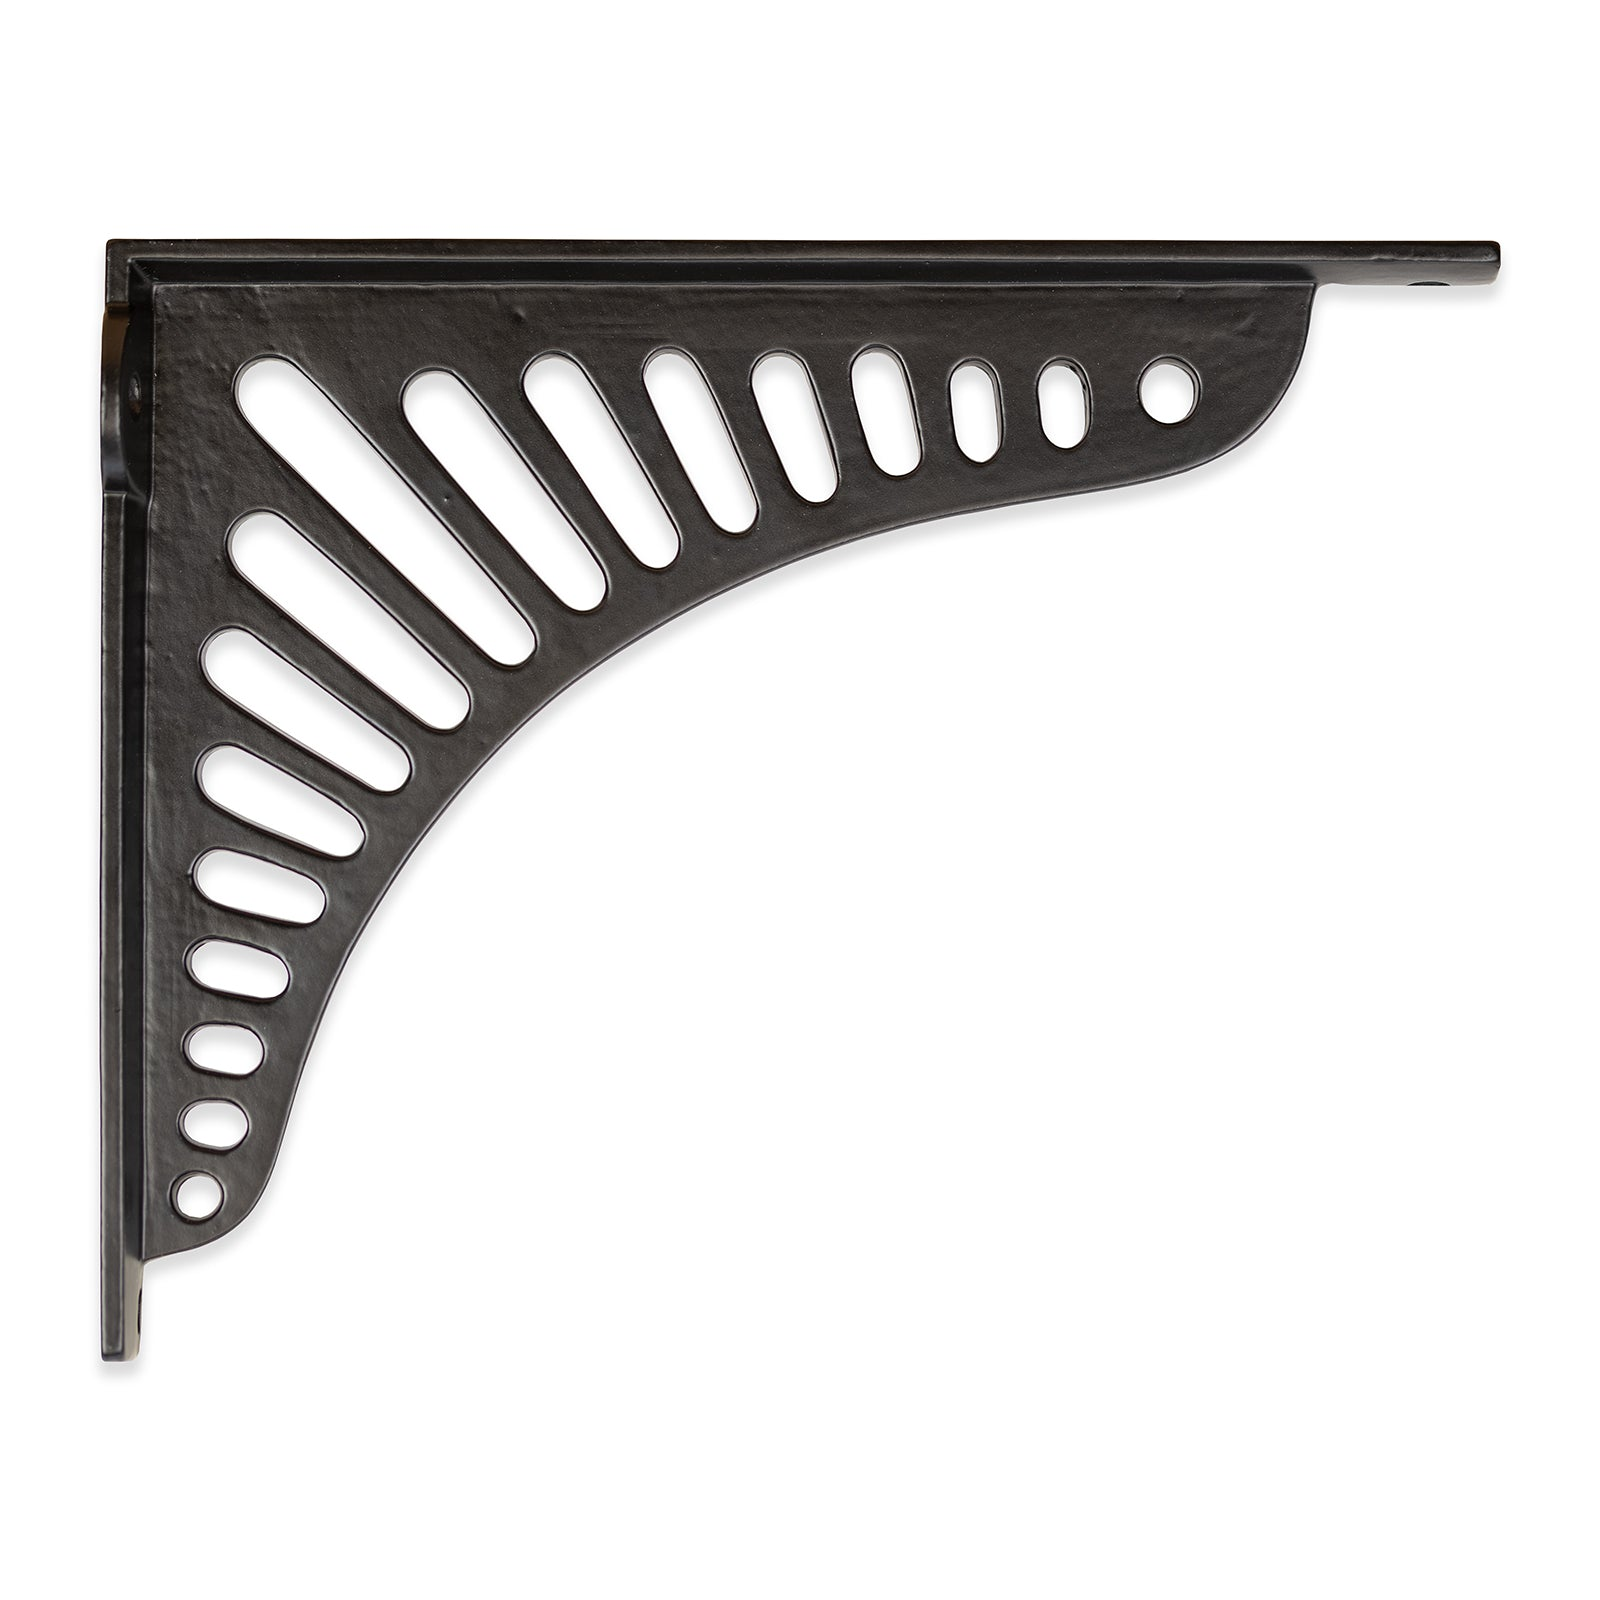 Sunrise Black Cast iron Shelf Bracket